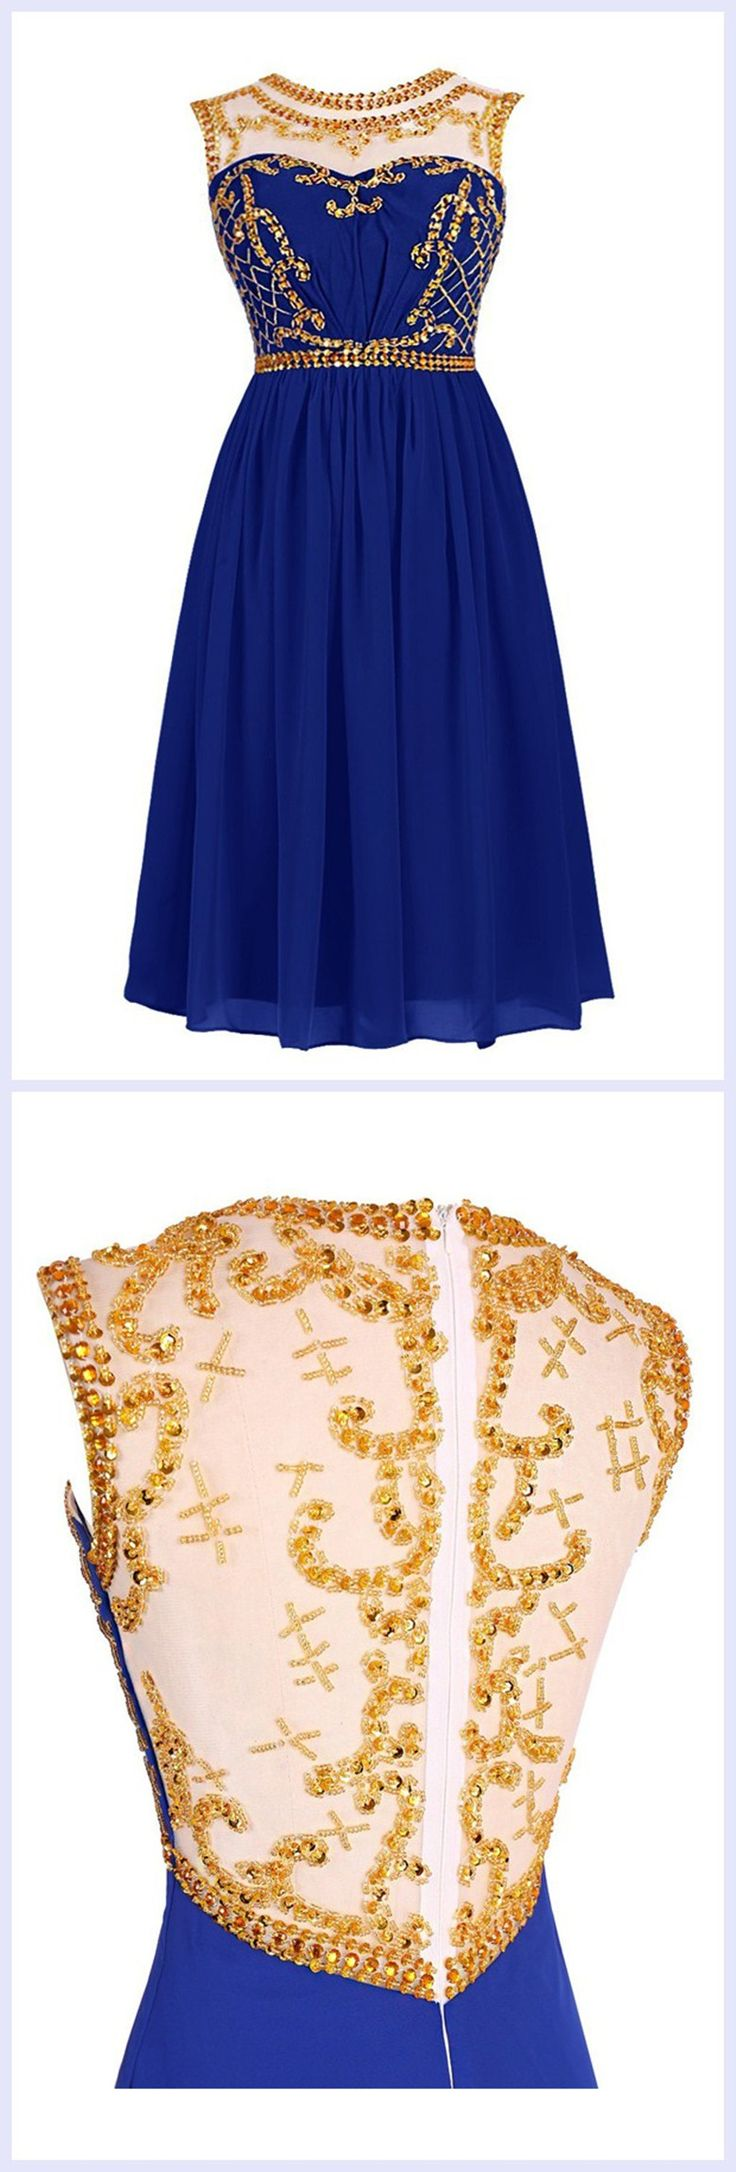 2016 homecoming dresses,short homecoming dress,royal blue homecoming dress,sparkling homecoming dress,pretty homecoming dress for teens,teen fashion party dress,back to school dress